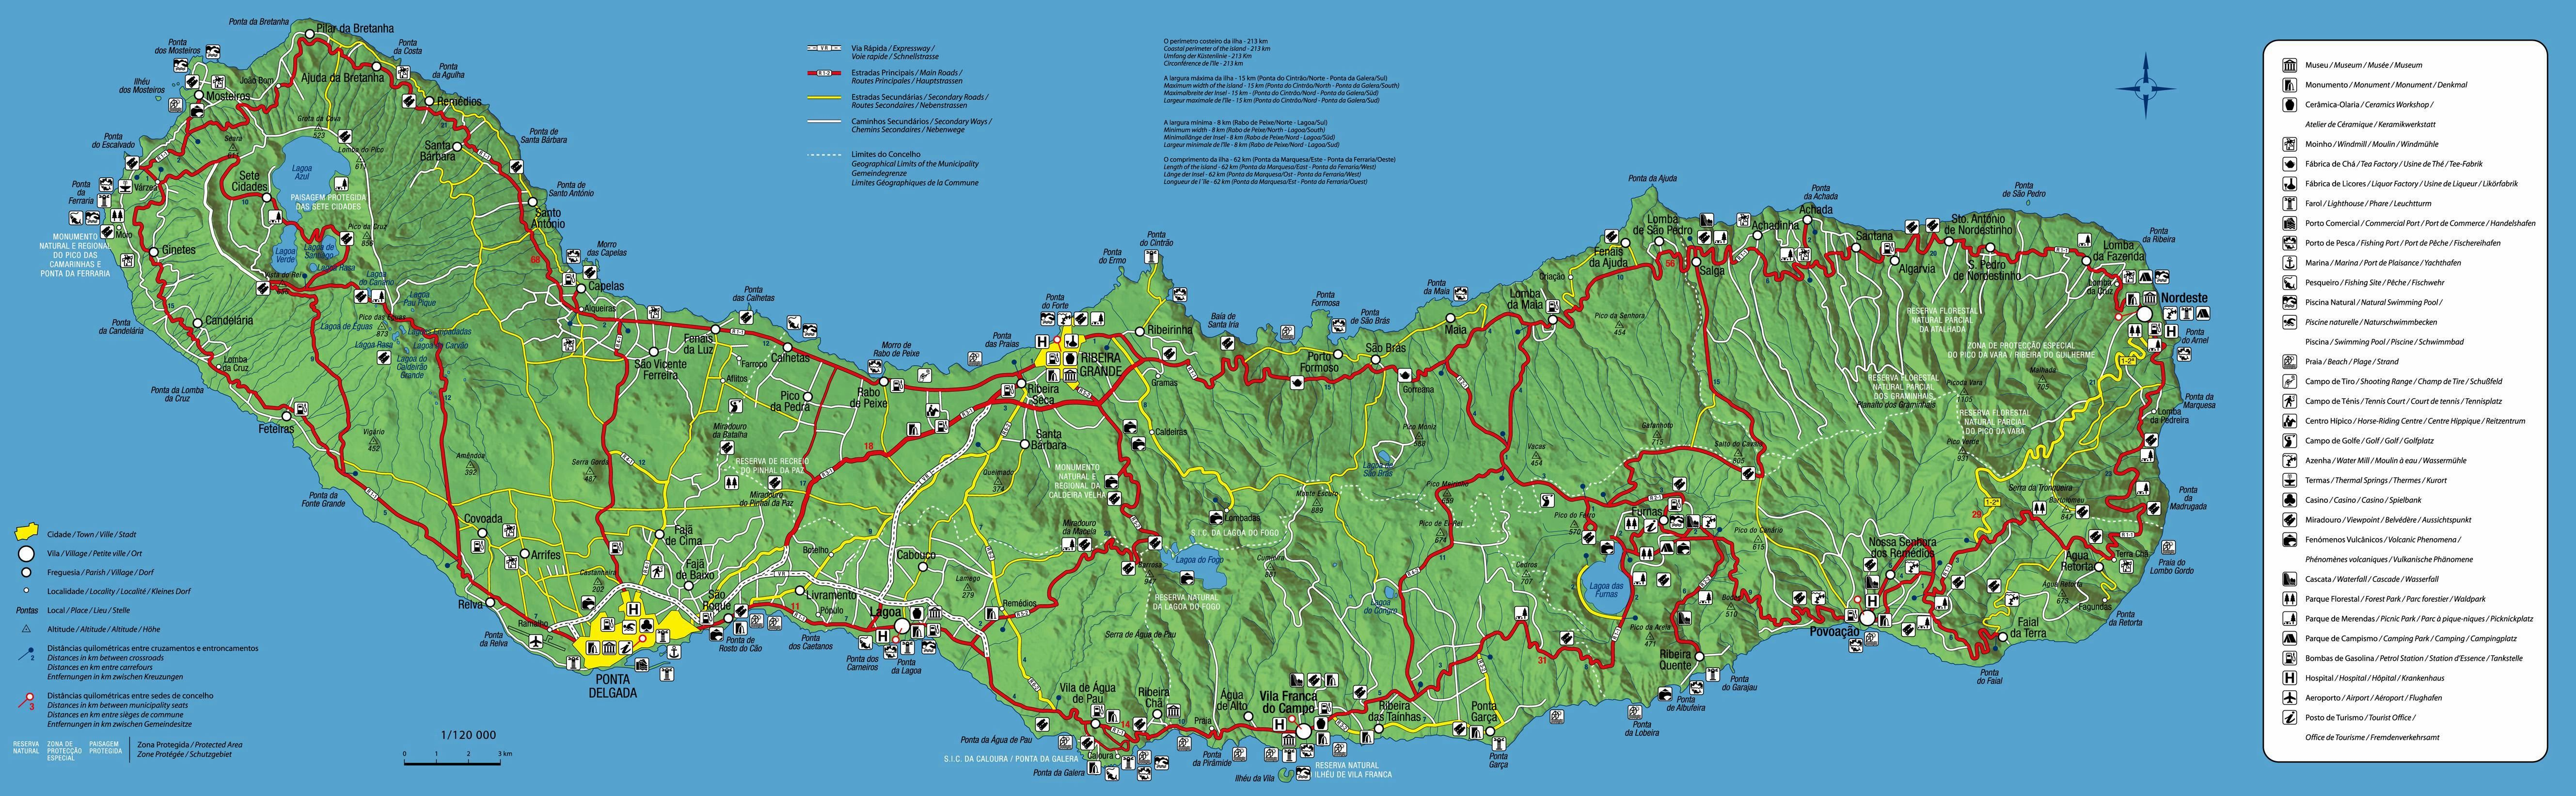 mapa sao miguel Large Sao Miguel Island Maps for Free Download and Print | High  mapa sao miguel